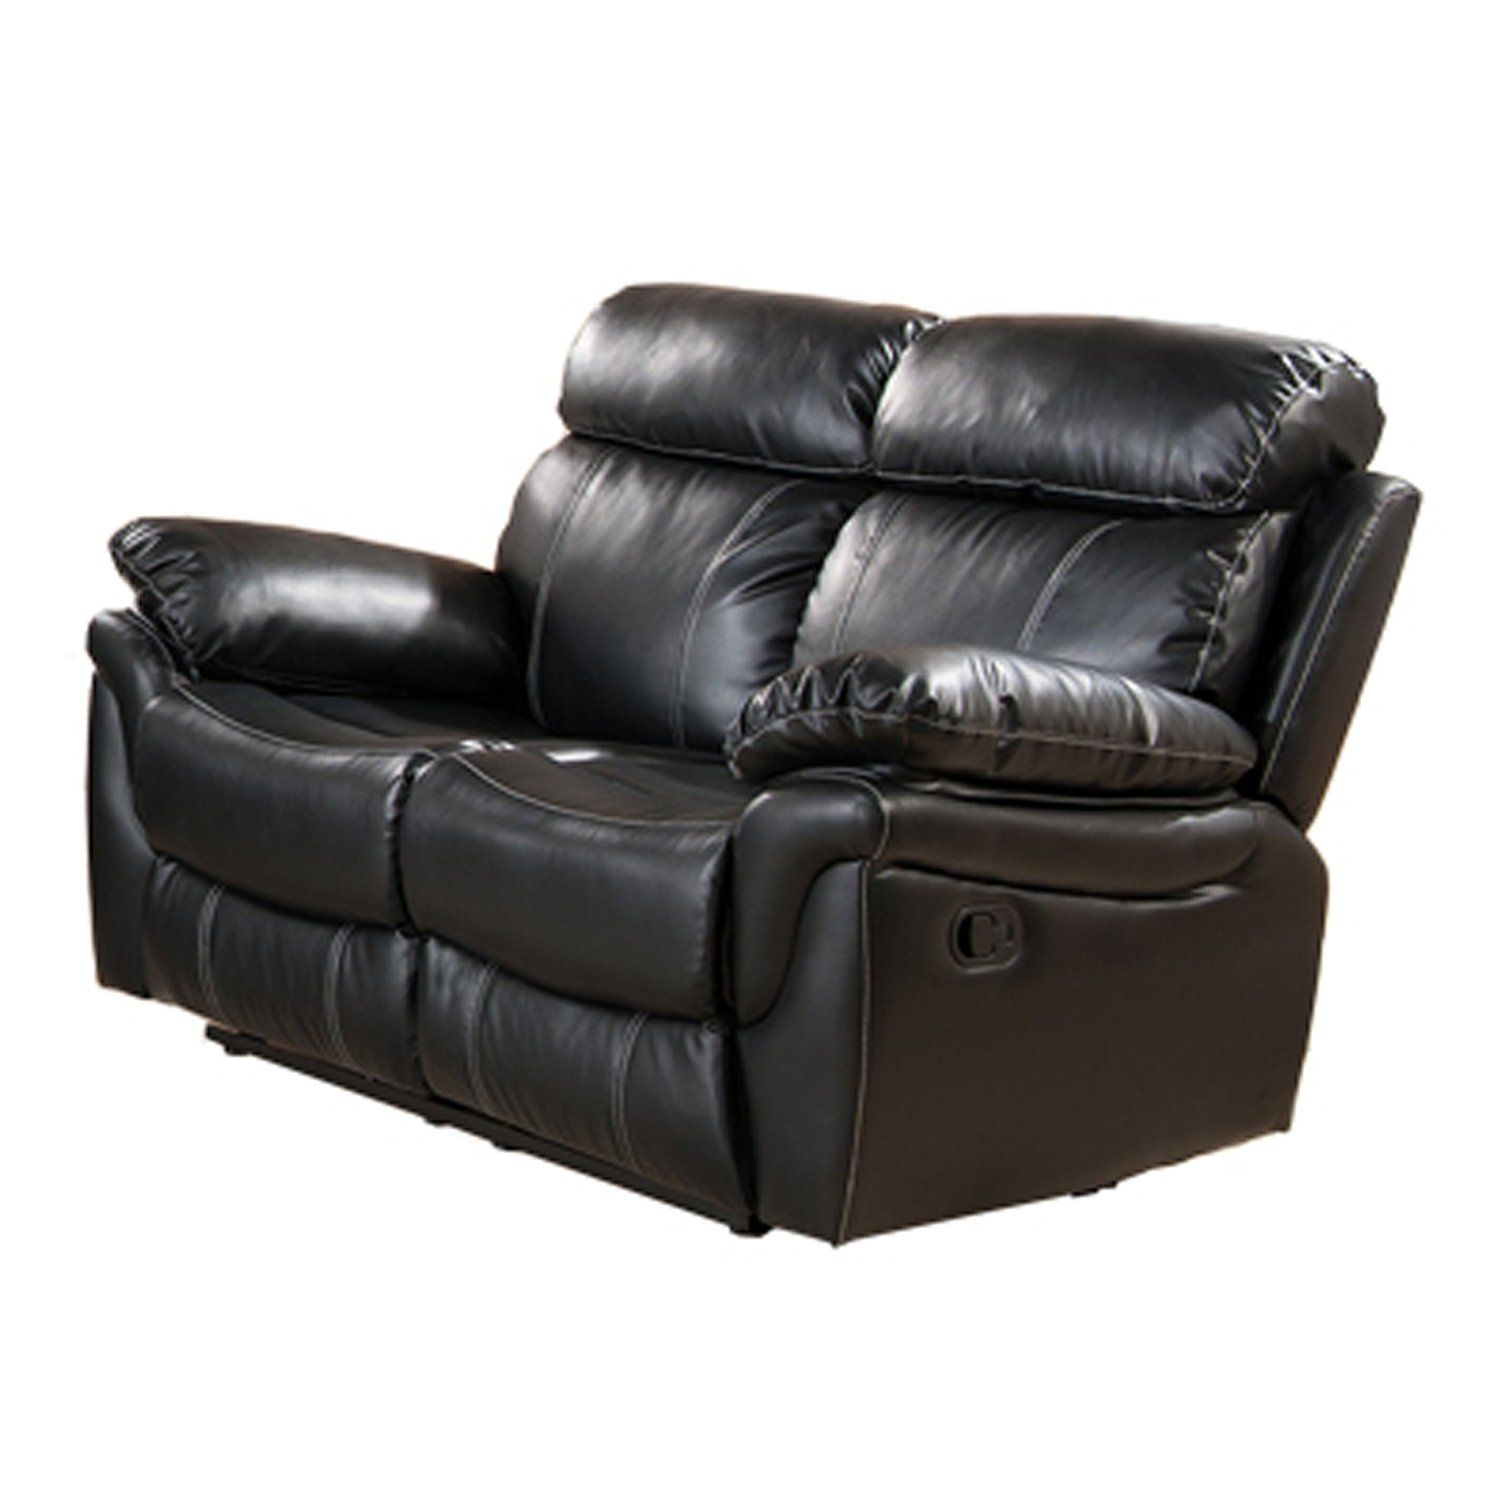 Cheap Living Room Furniture, Find Living Room Furniture